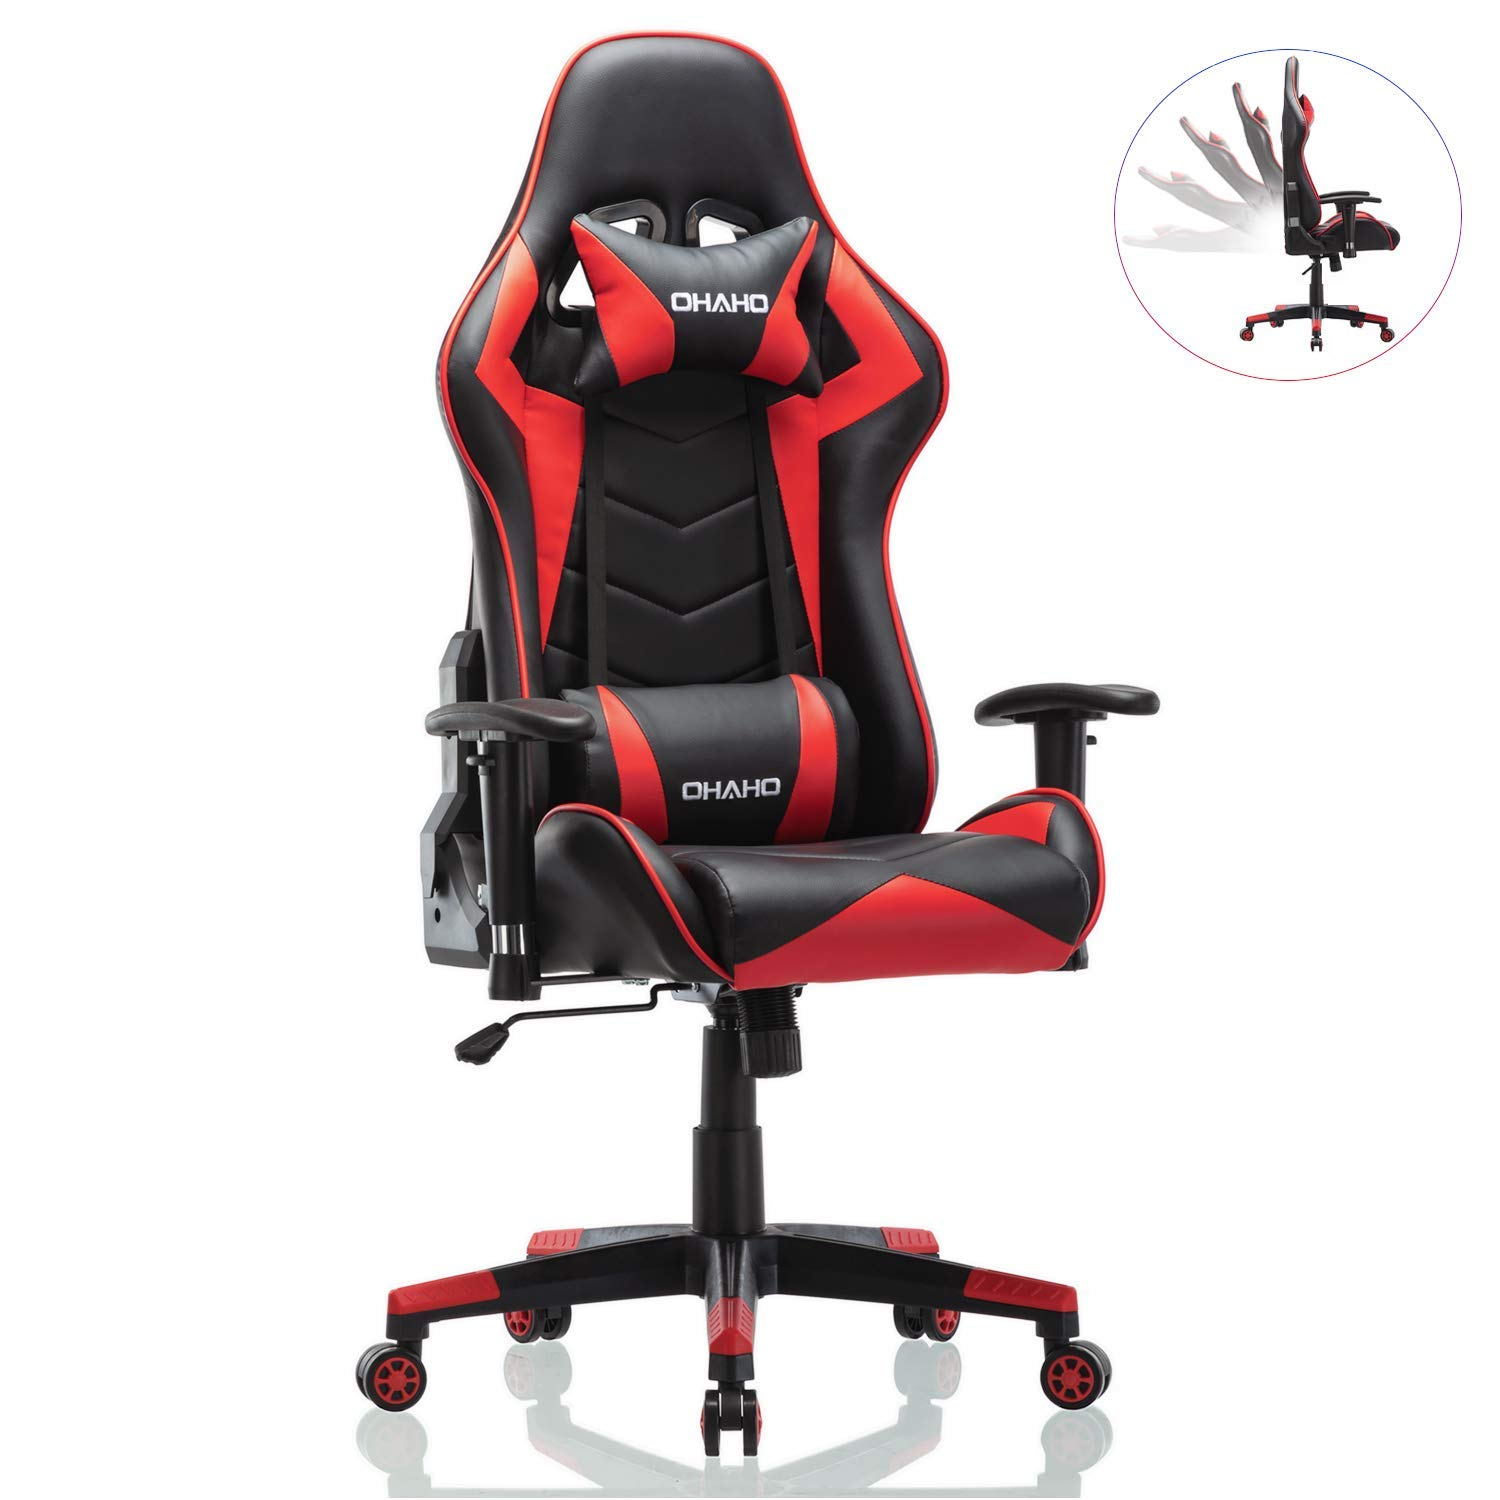 OHAHO Gaming Chair Racing Style Office Chair Adjustable Lumbar Cushion Swivel Rocker Recliner PU Leather High Back Ergonomic Computer Desk Chair with Retractable Armrest Red